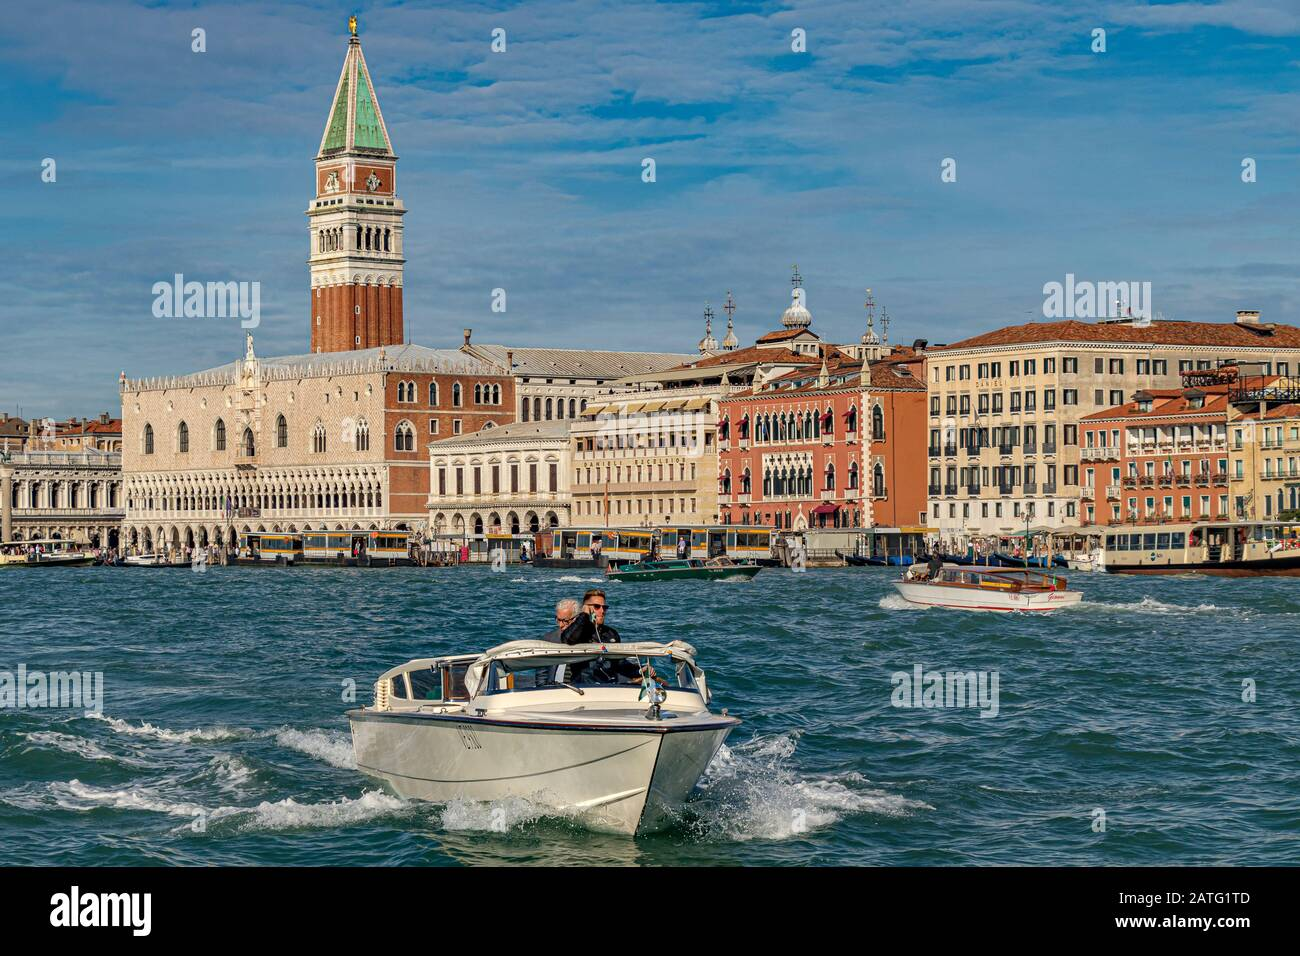 A Water taxi speeds along The waterfront near Piazza San Marco with St Marks Tower and The Doges Palace in the distance ,Venice,Italy Stock Photo